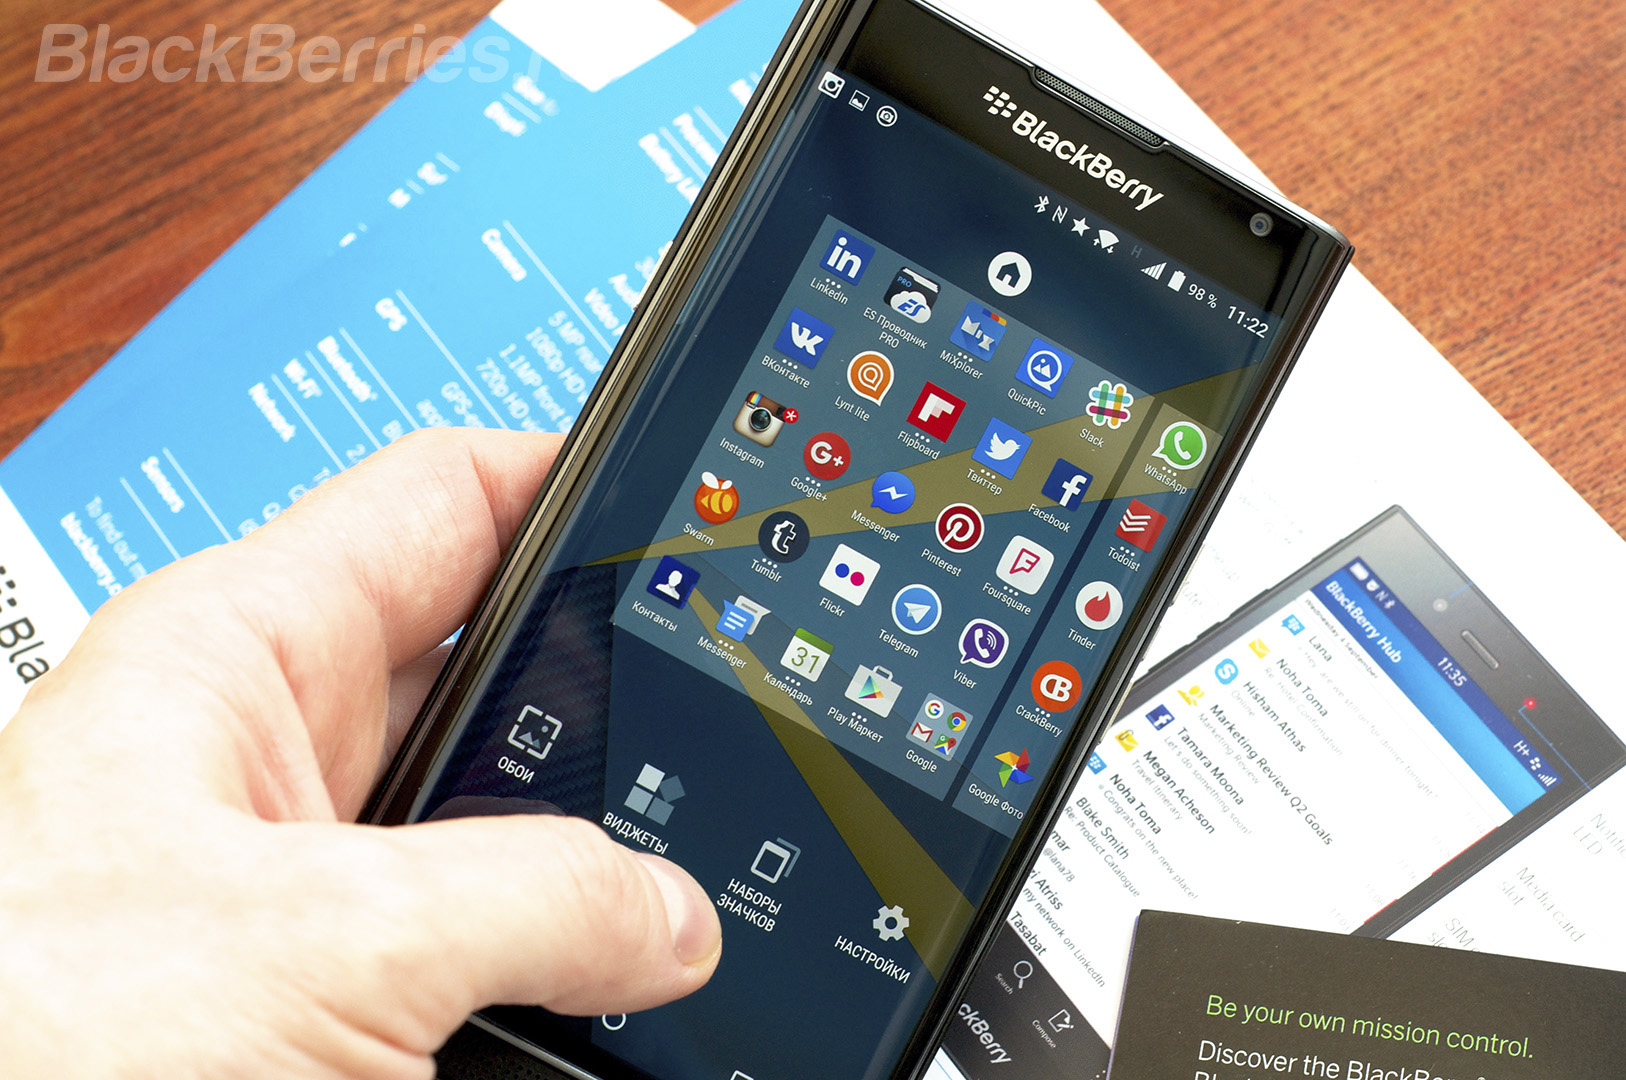 BlackBerry-Priv-Guide-05